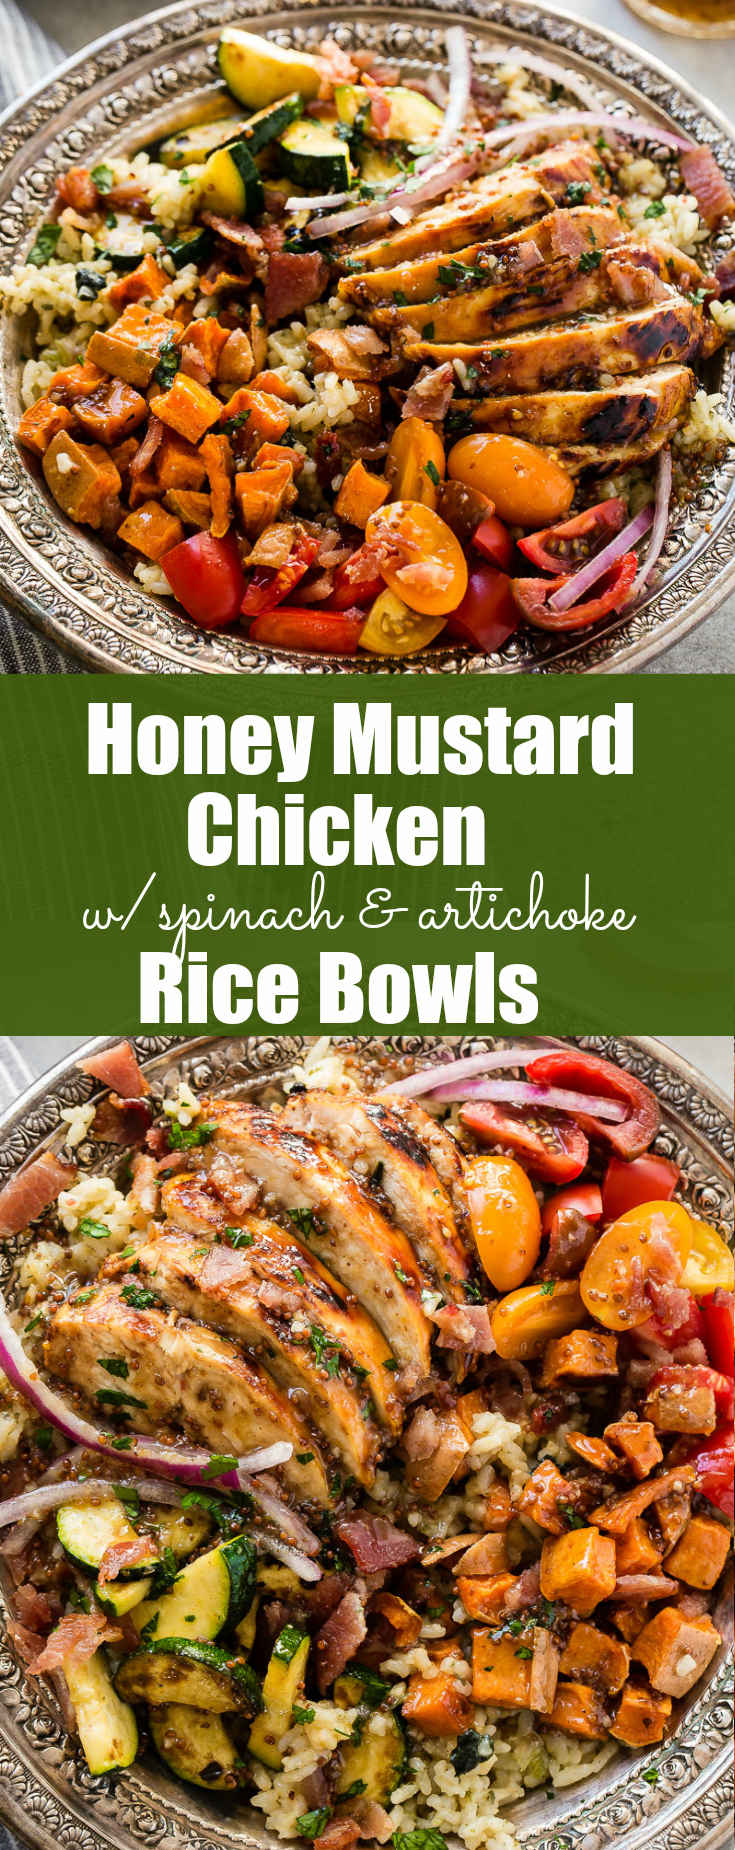 Need recipes for holiday leftovers, but also need quick and easy healthy recipes? Honey mustard chicken with spinach and artichoke rice bowls are it!